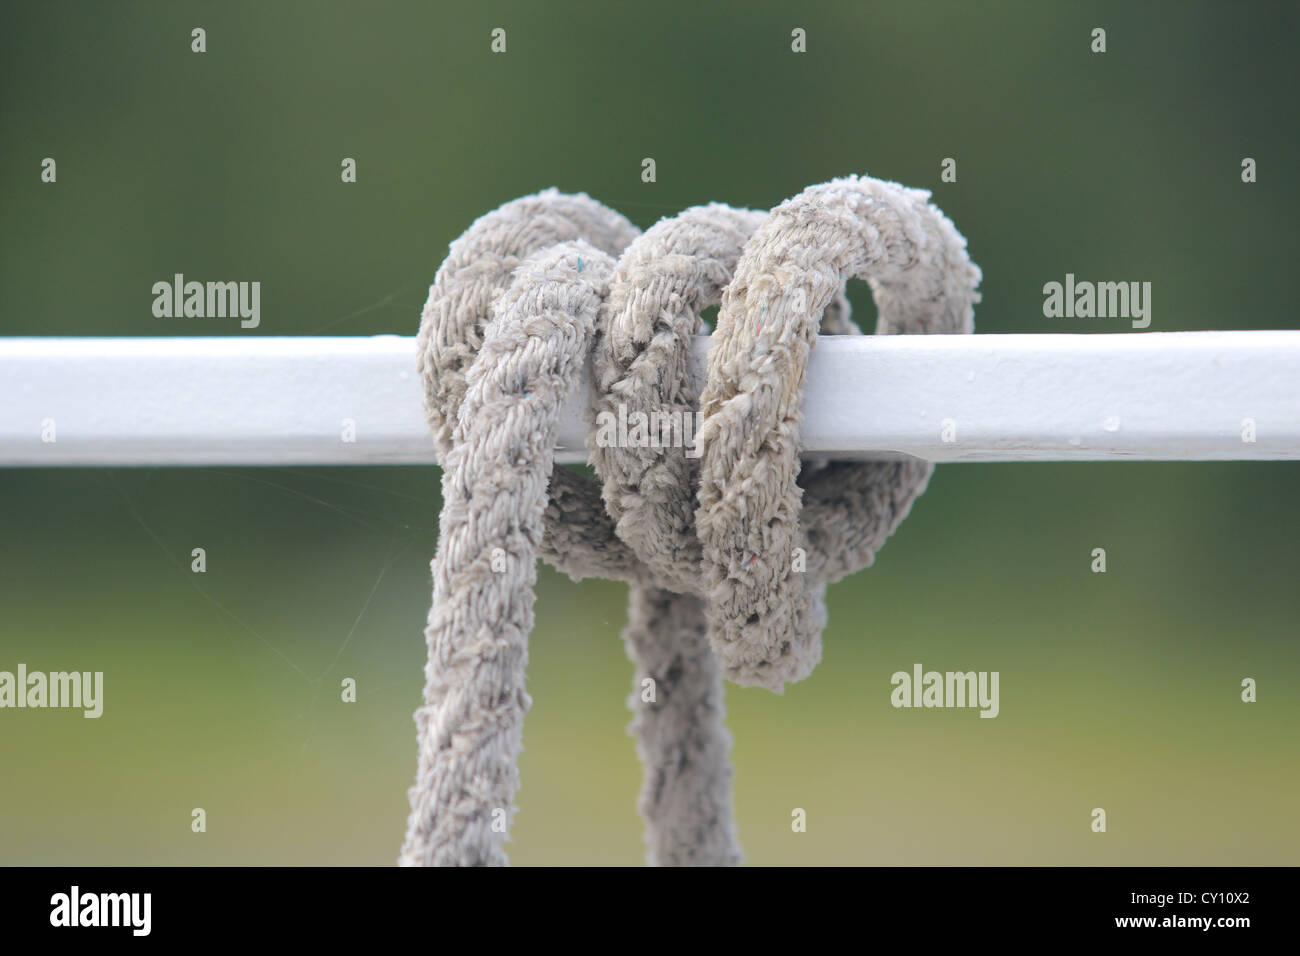 White rope coiled around a bar Stock Photo